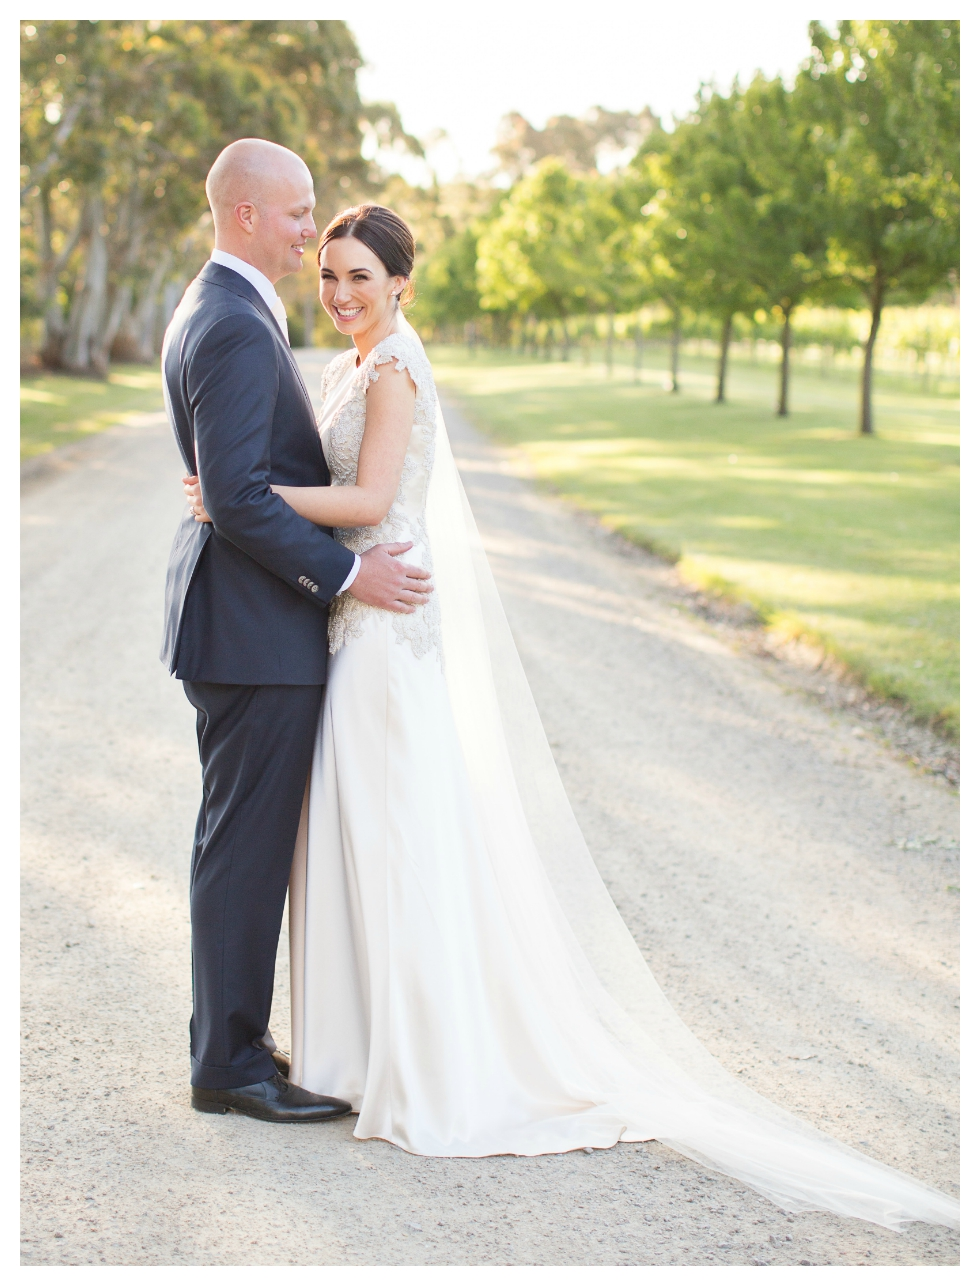 catherine r couture, stillwater at crittenden, mornington peninsula wedding photographer